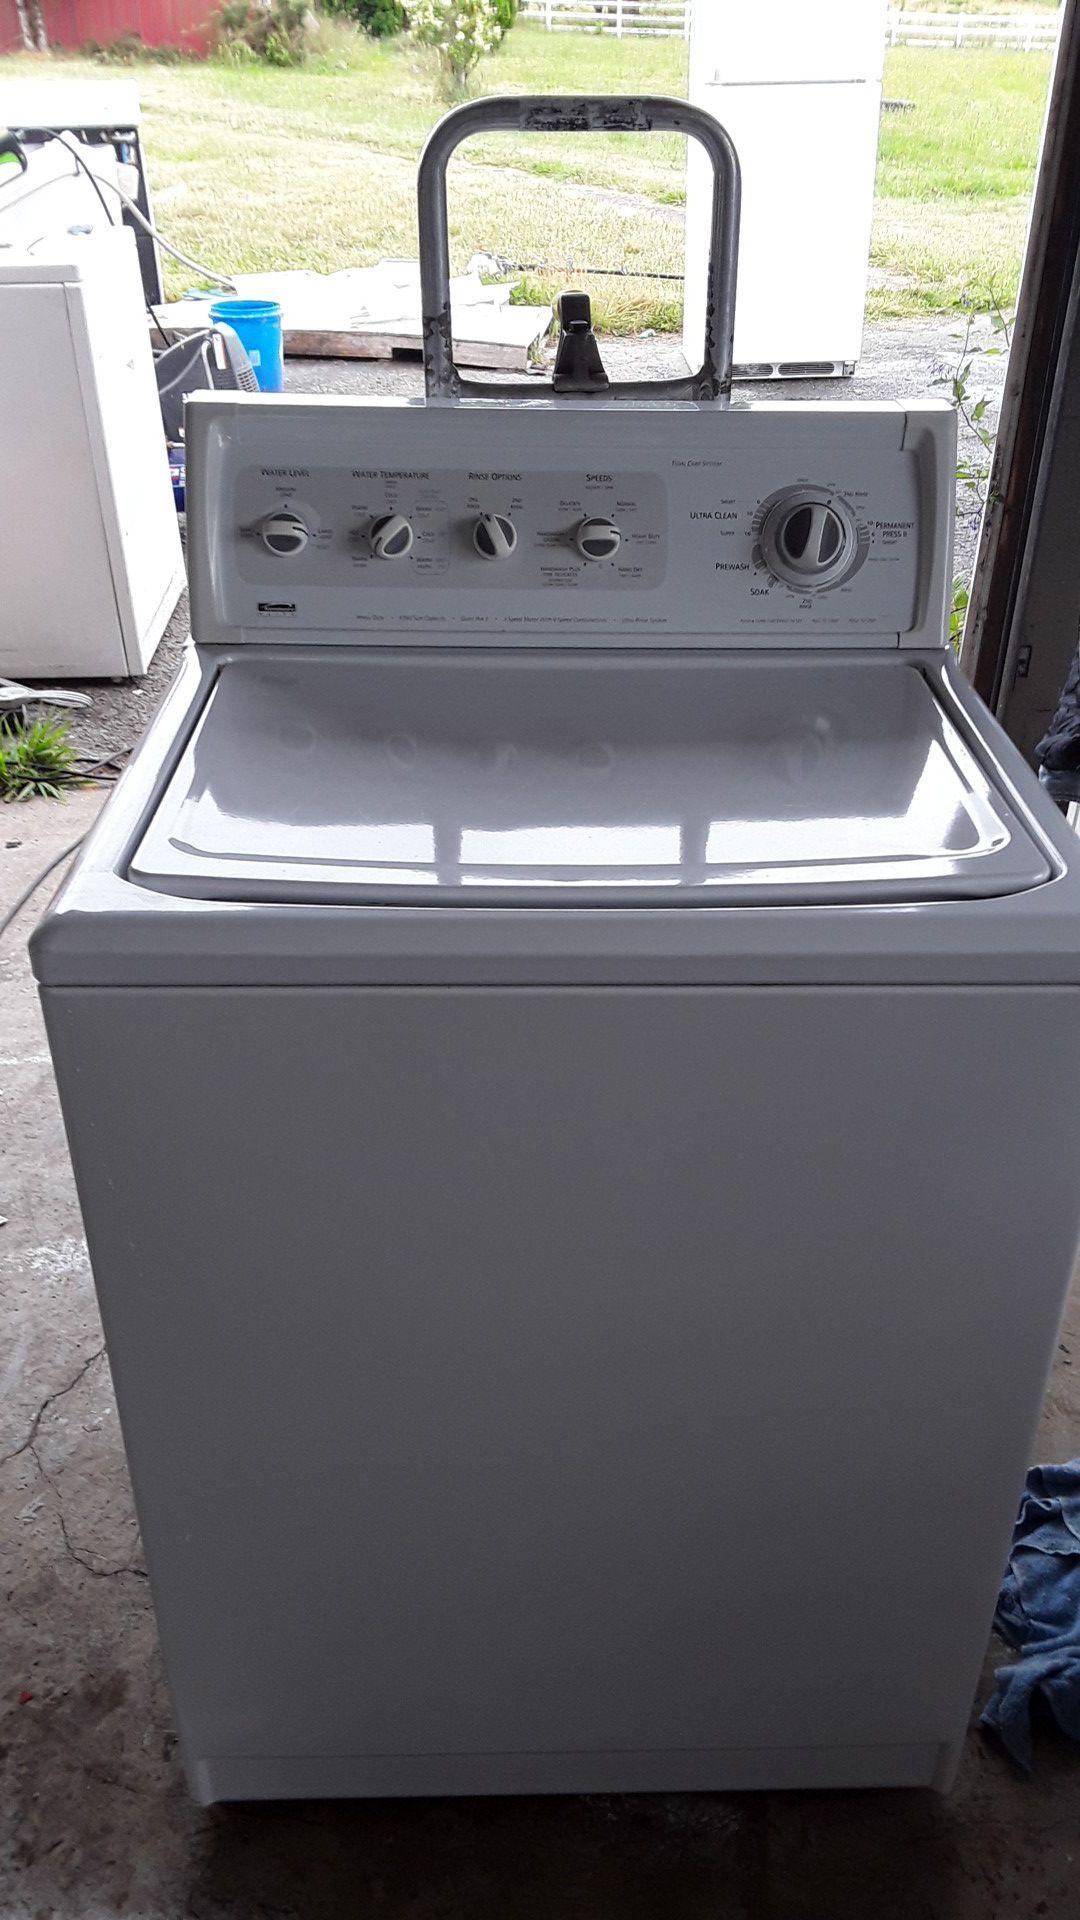 Kenmore king size capacity Elite washer totally rebuilt comes with a 90-day warranty